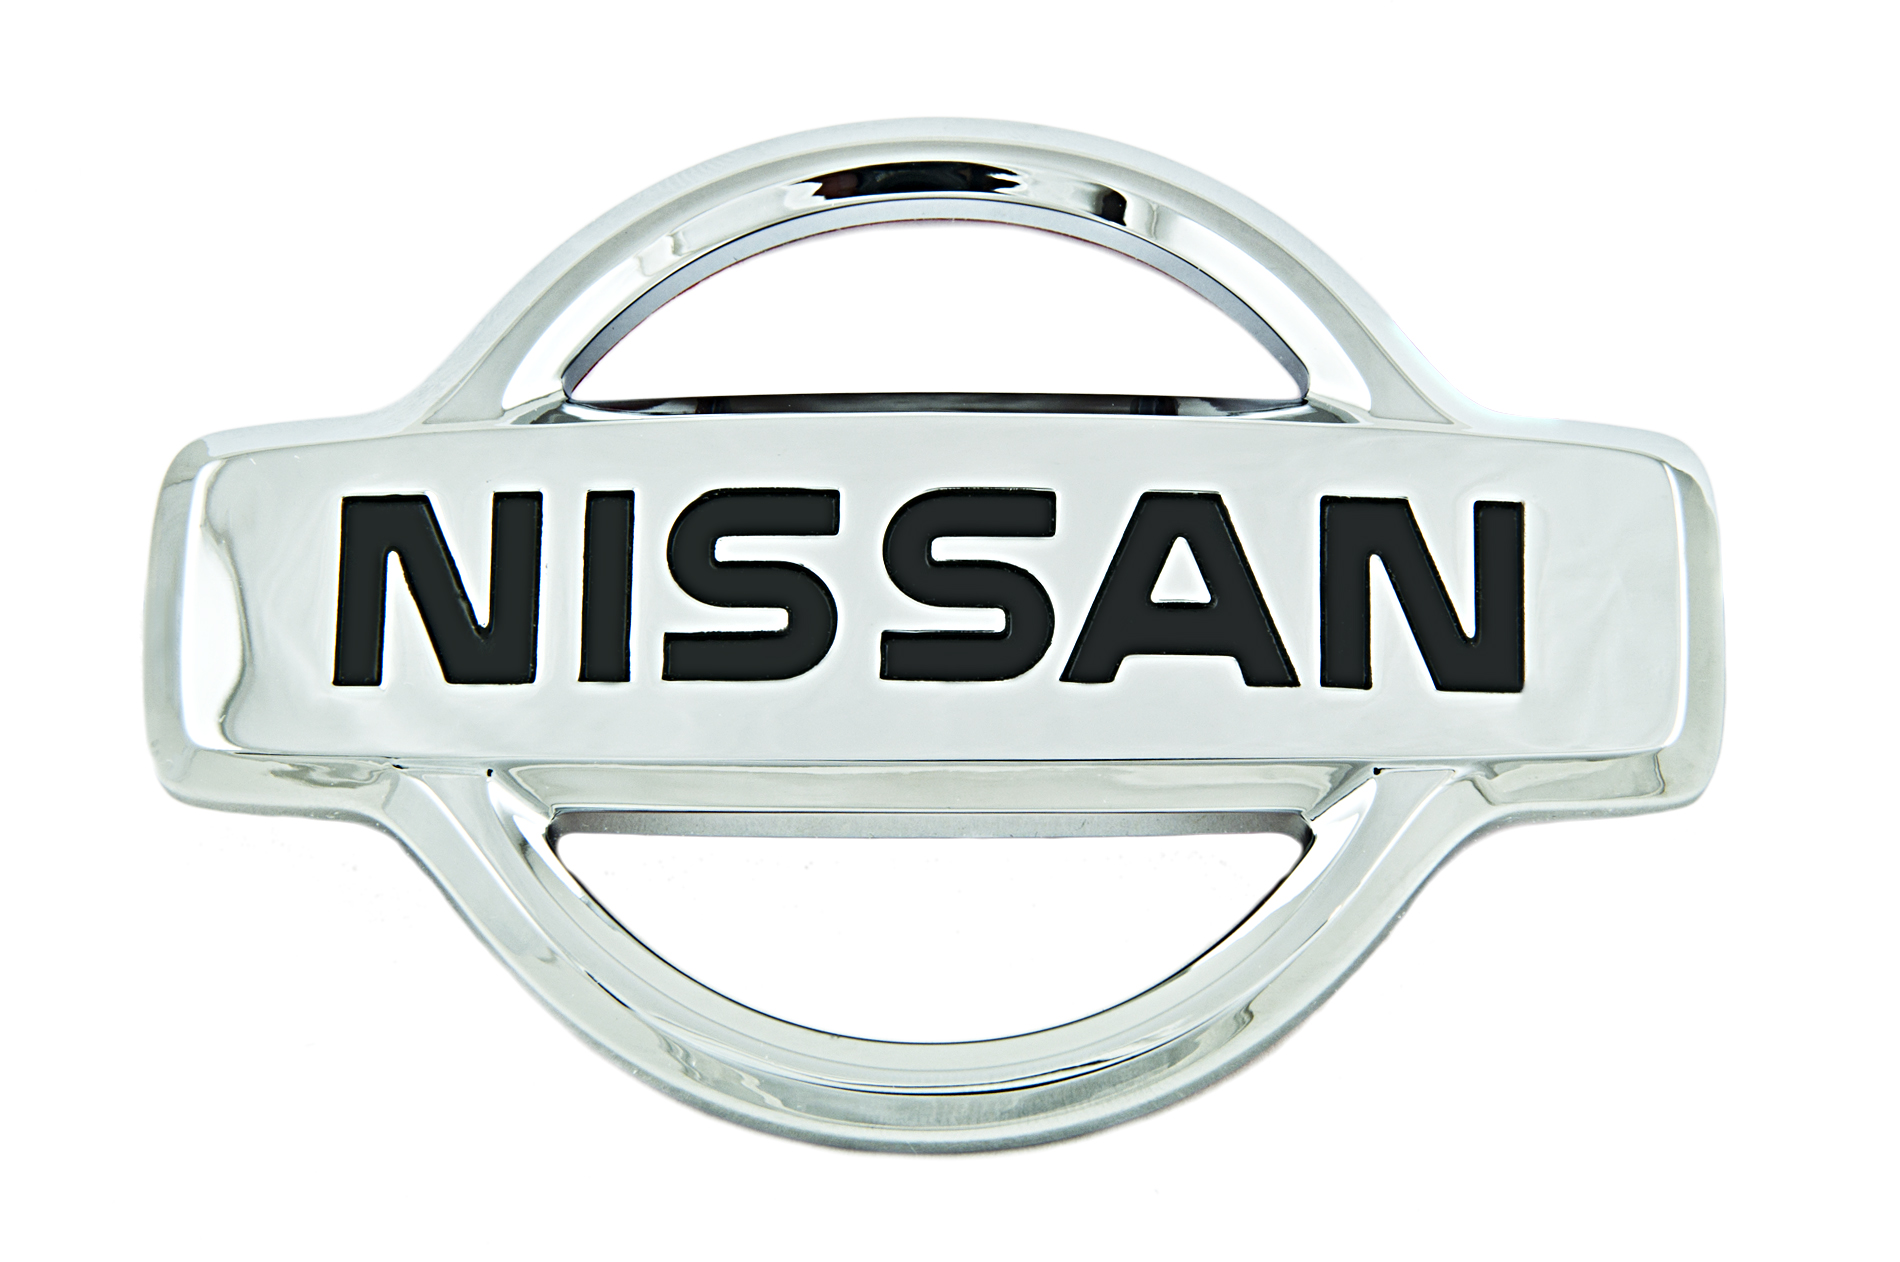 Nissan badges #5